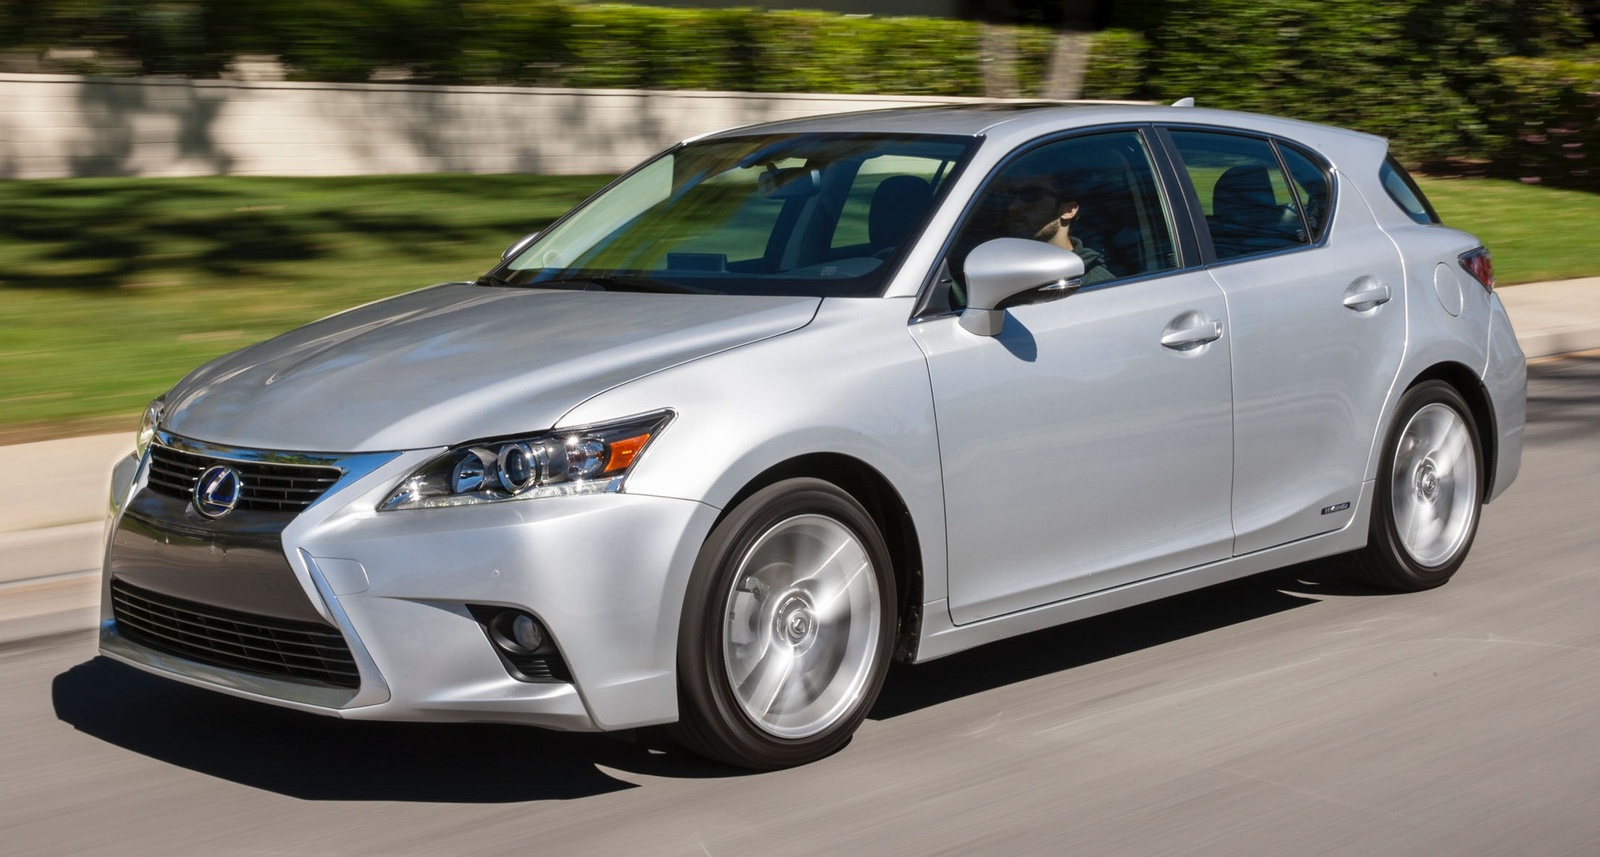 2015 lexus ct 200h test drive review cargurus. Black Bedroom Furniture Sets. Home Design Ideas